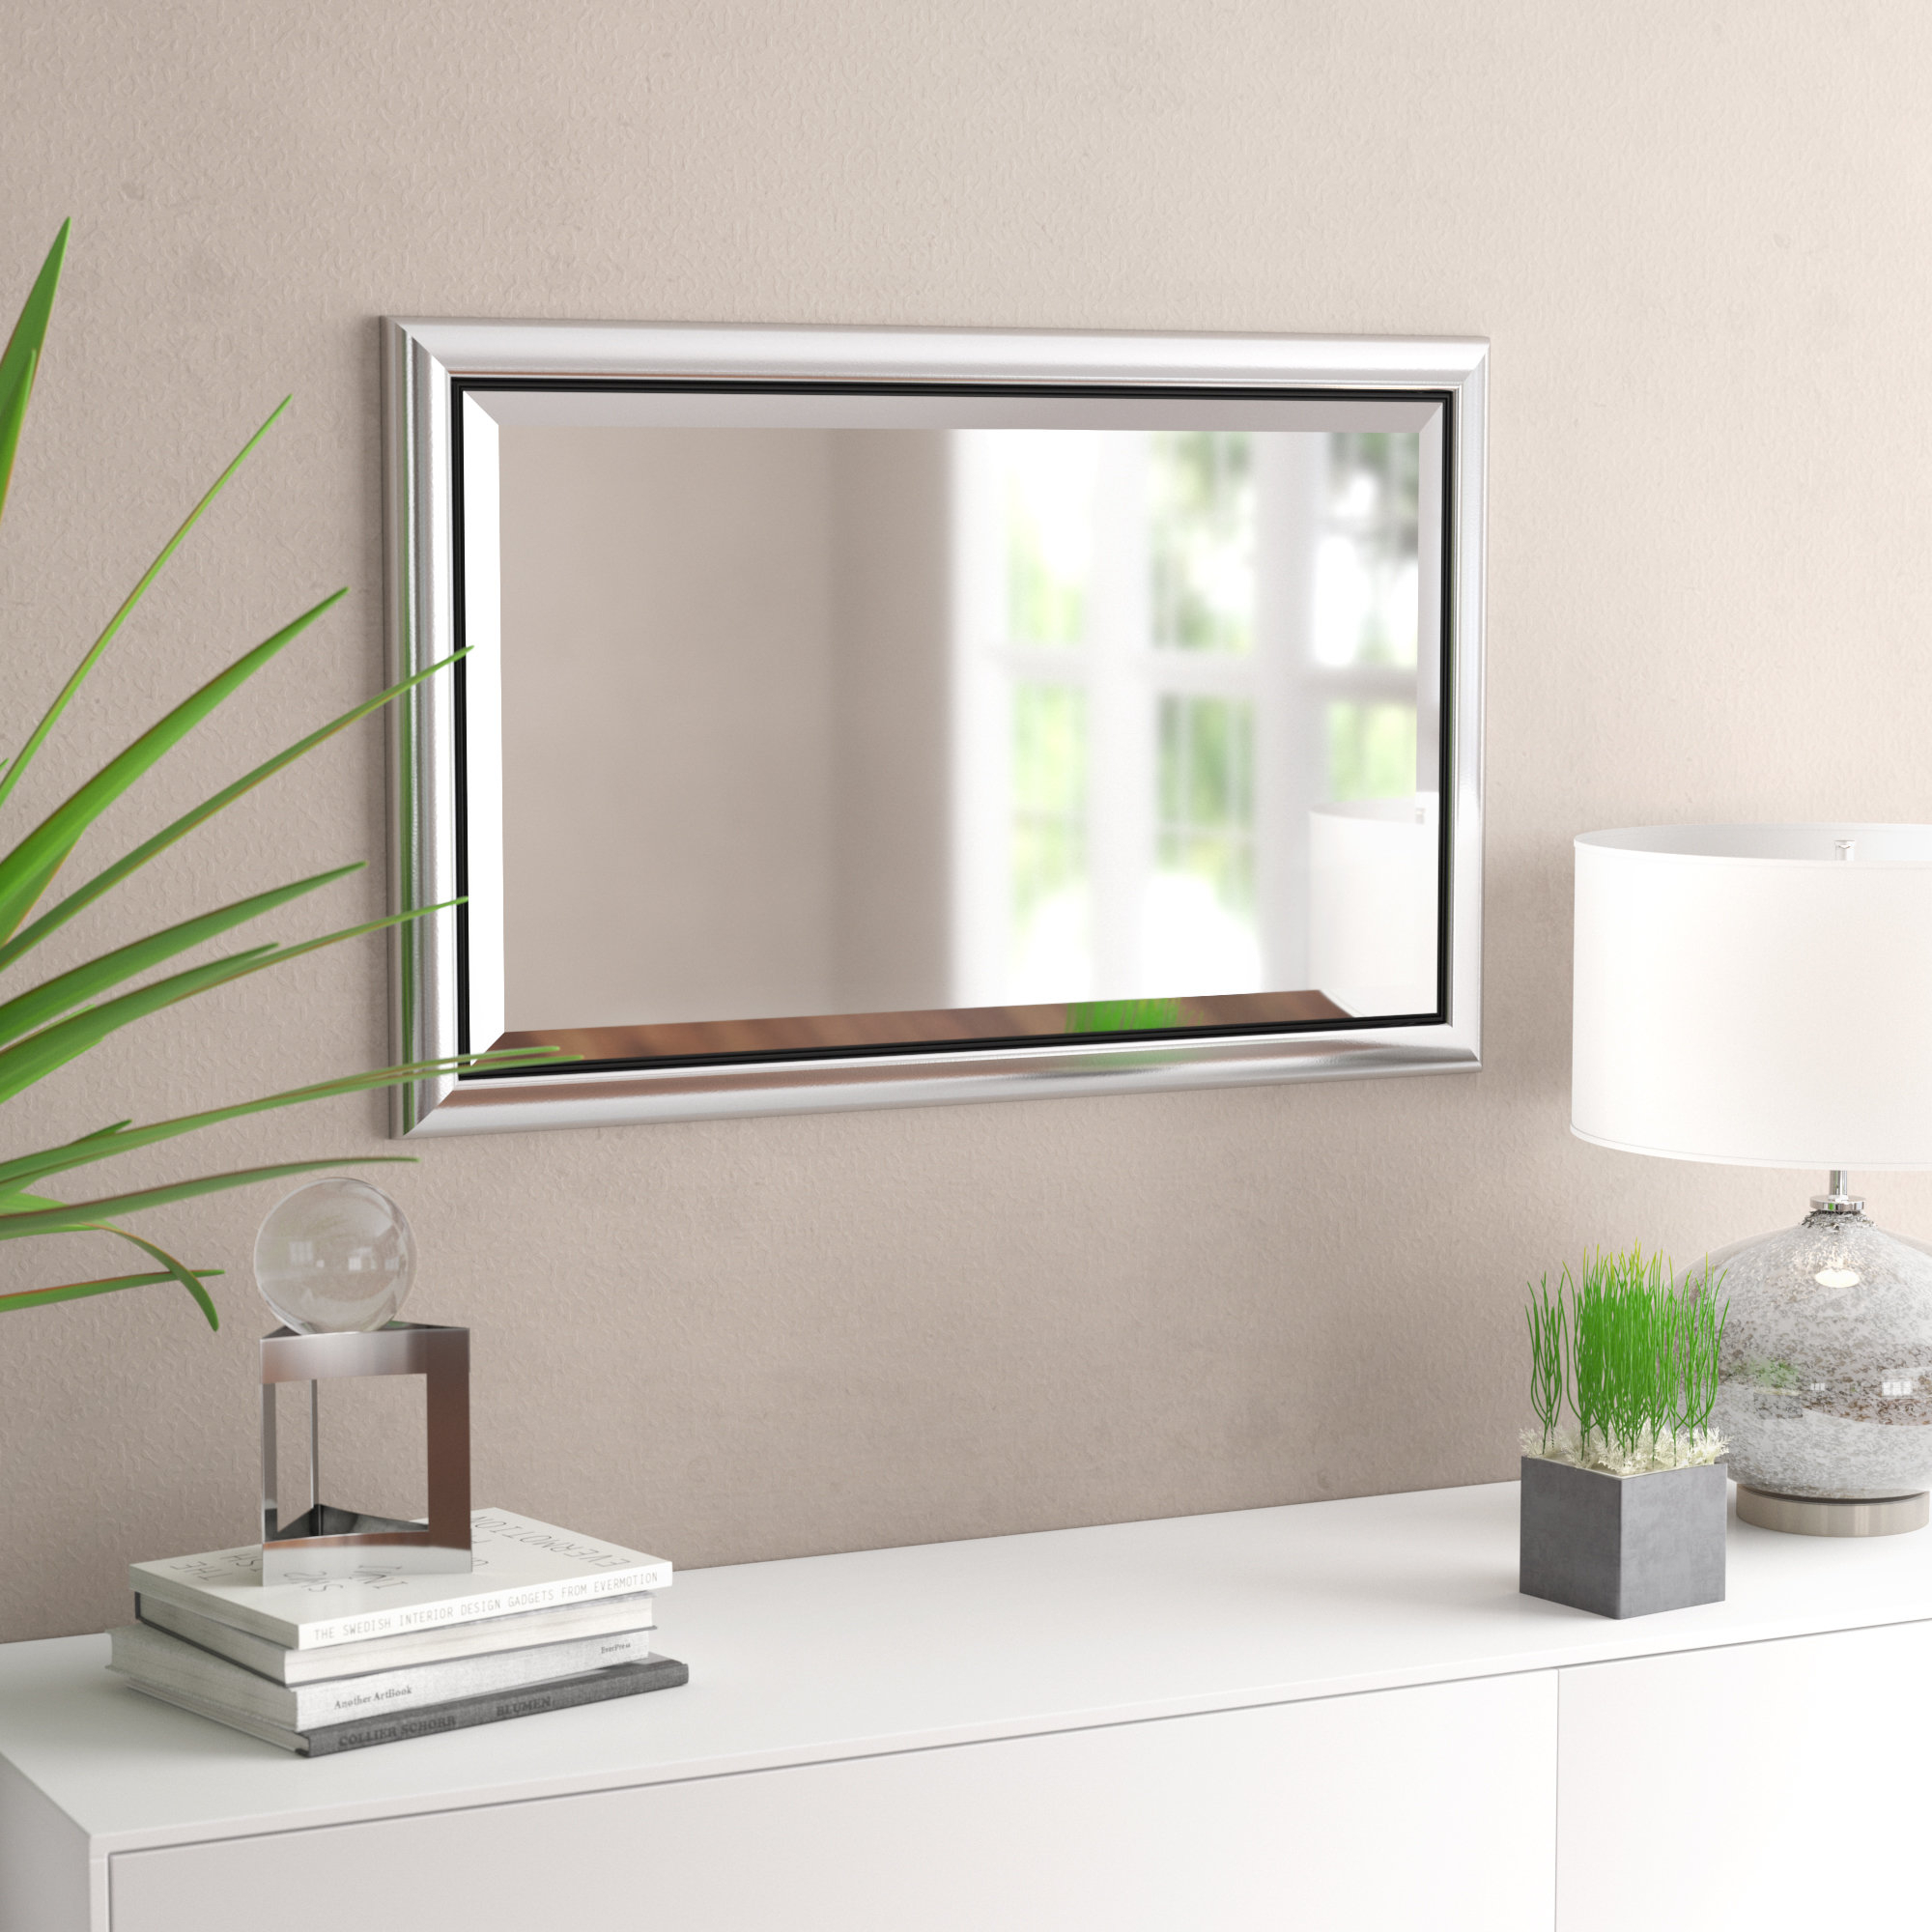 Modern & Contemporary Beveled Rectangle Accent Mirror Throughout Arrigo Accent Mirrors (View 15 of 20)